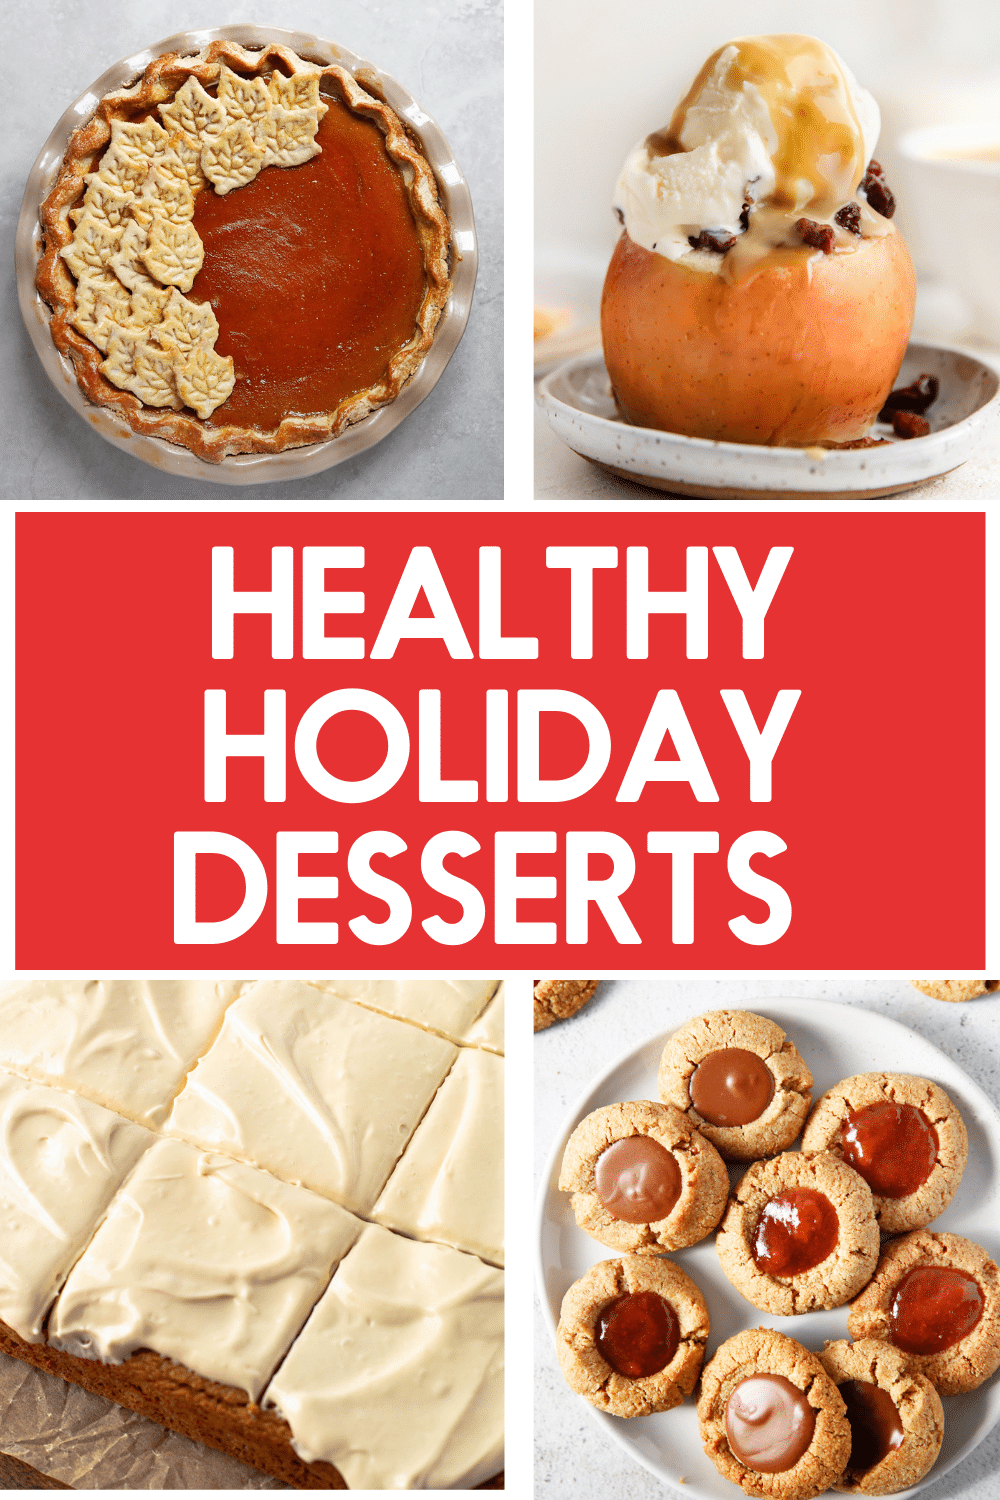 Holiday desserts.